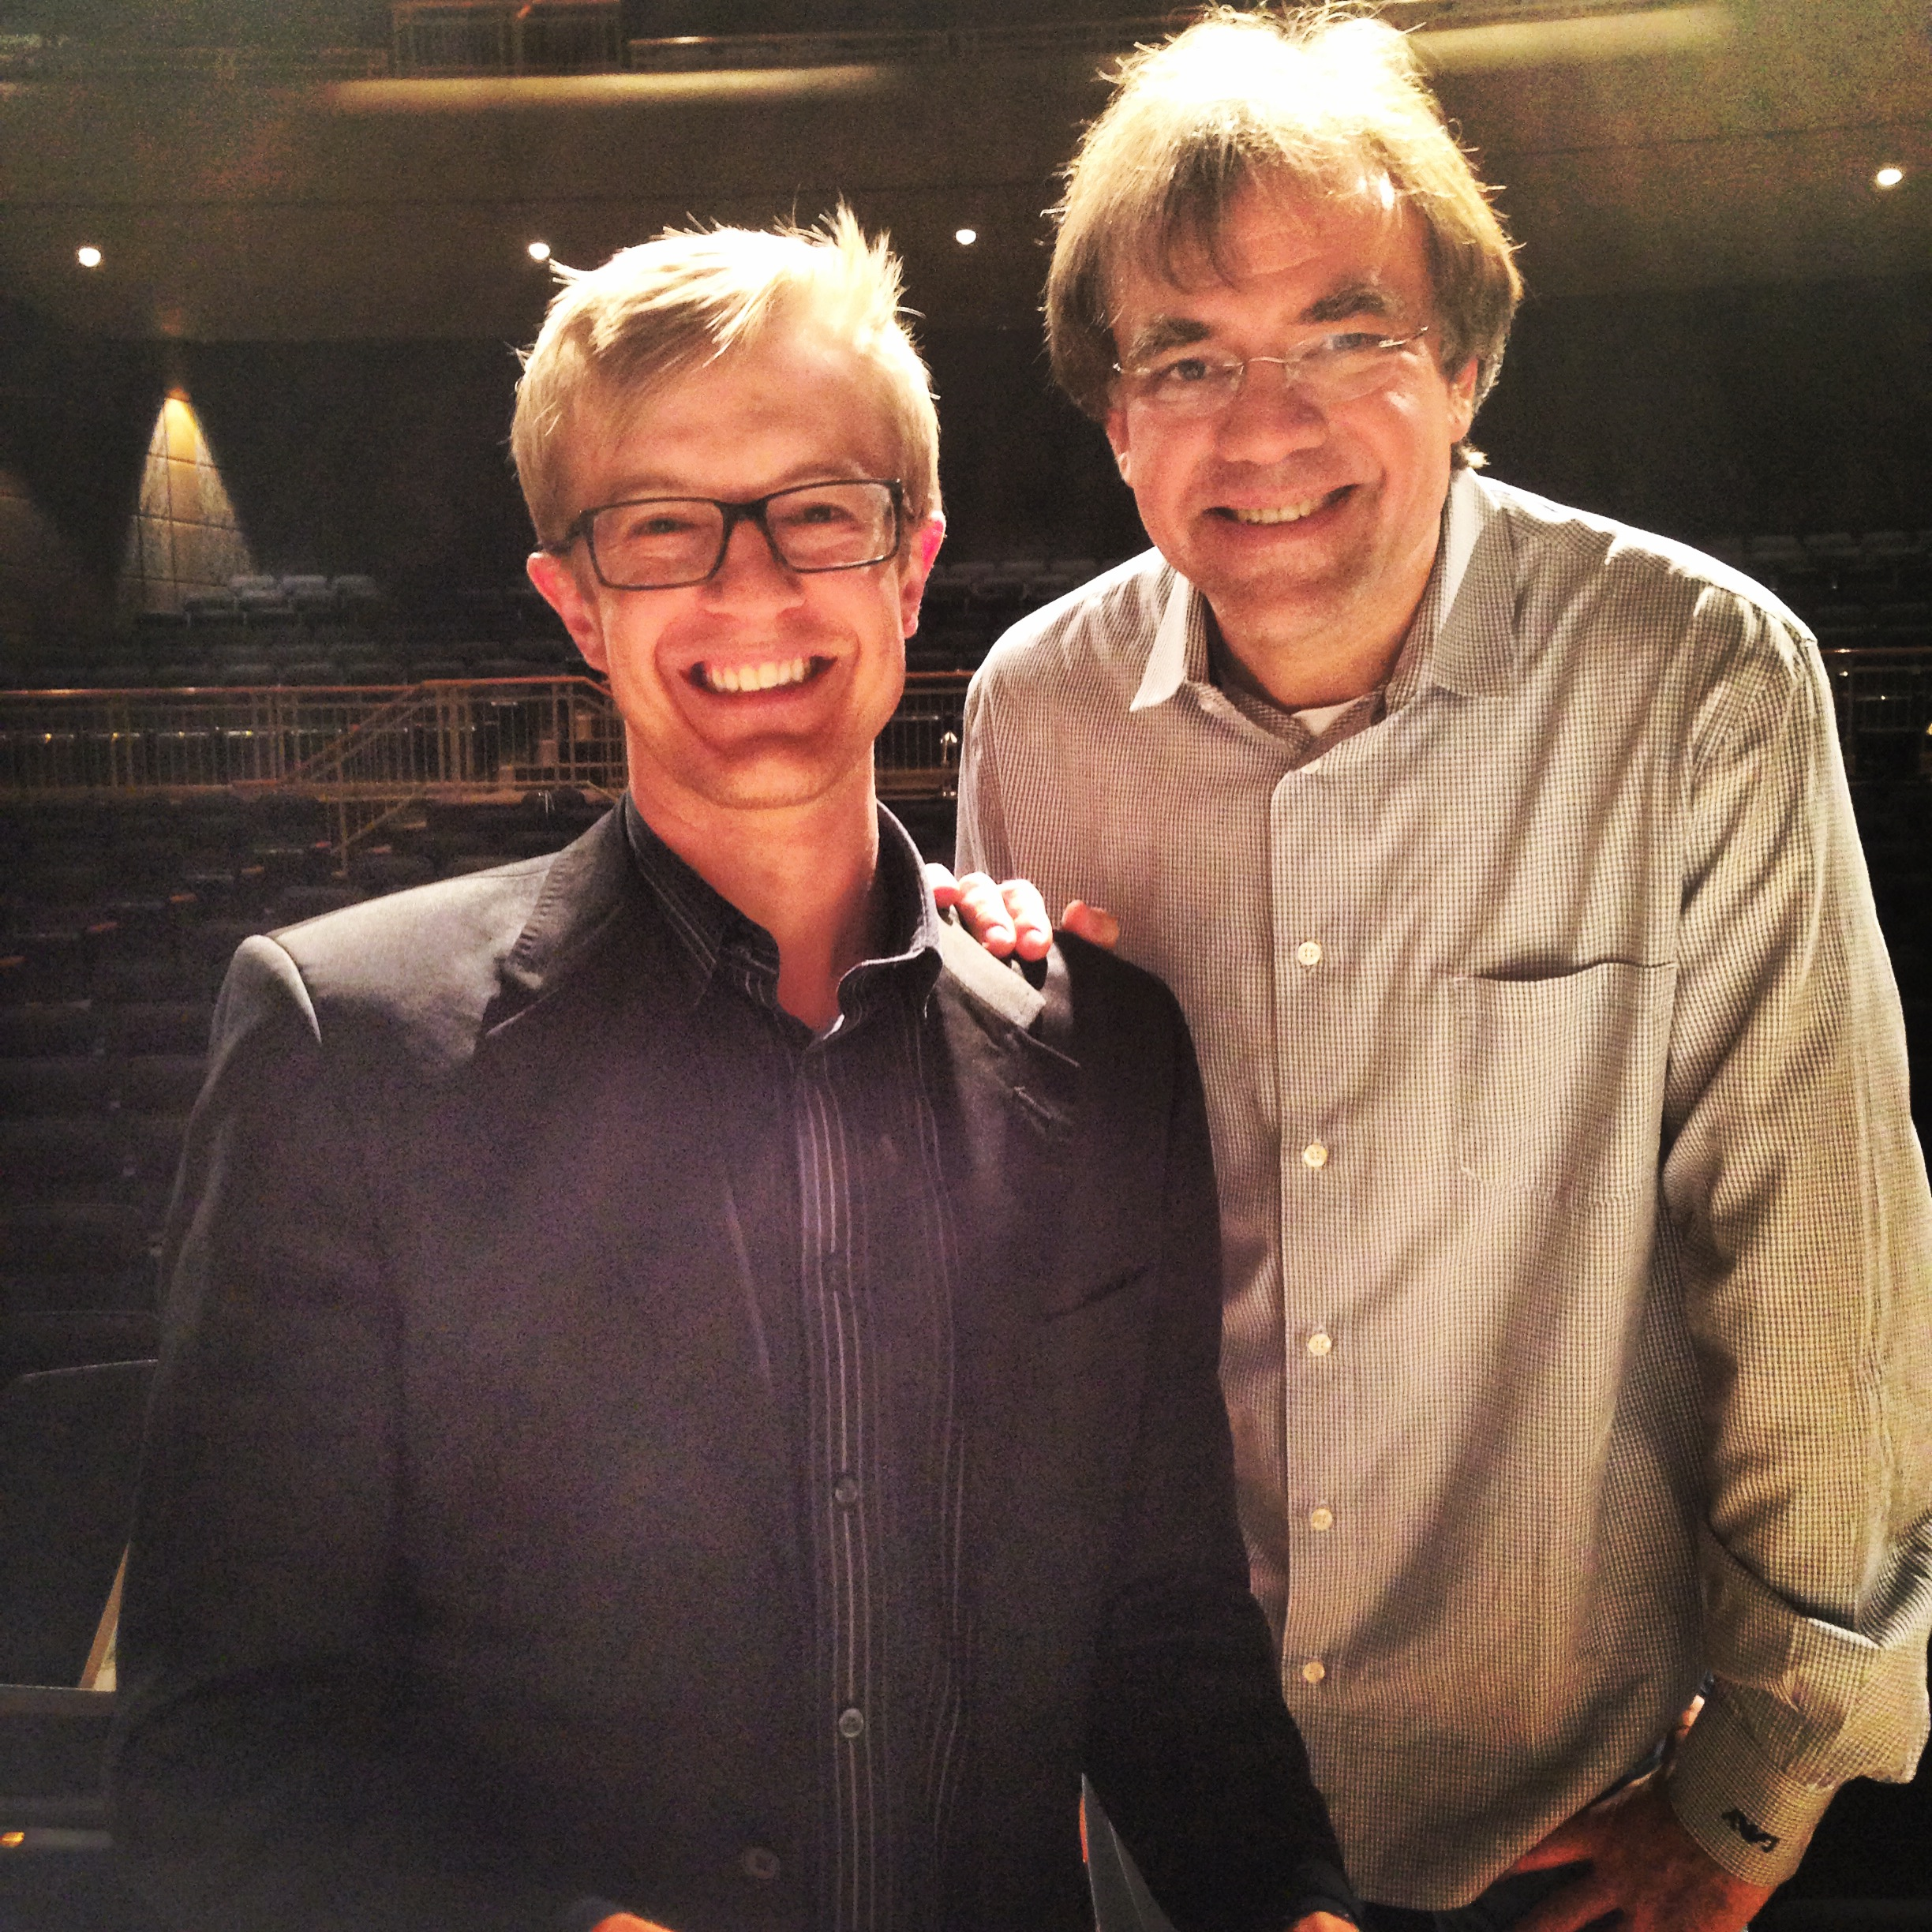 Mid-rehearsal with my beloved friend and mentor Christopher Wilkins.